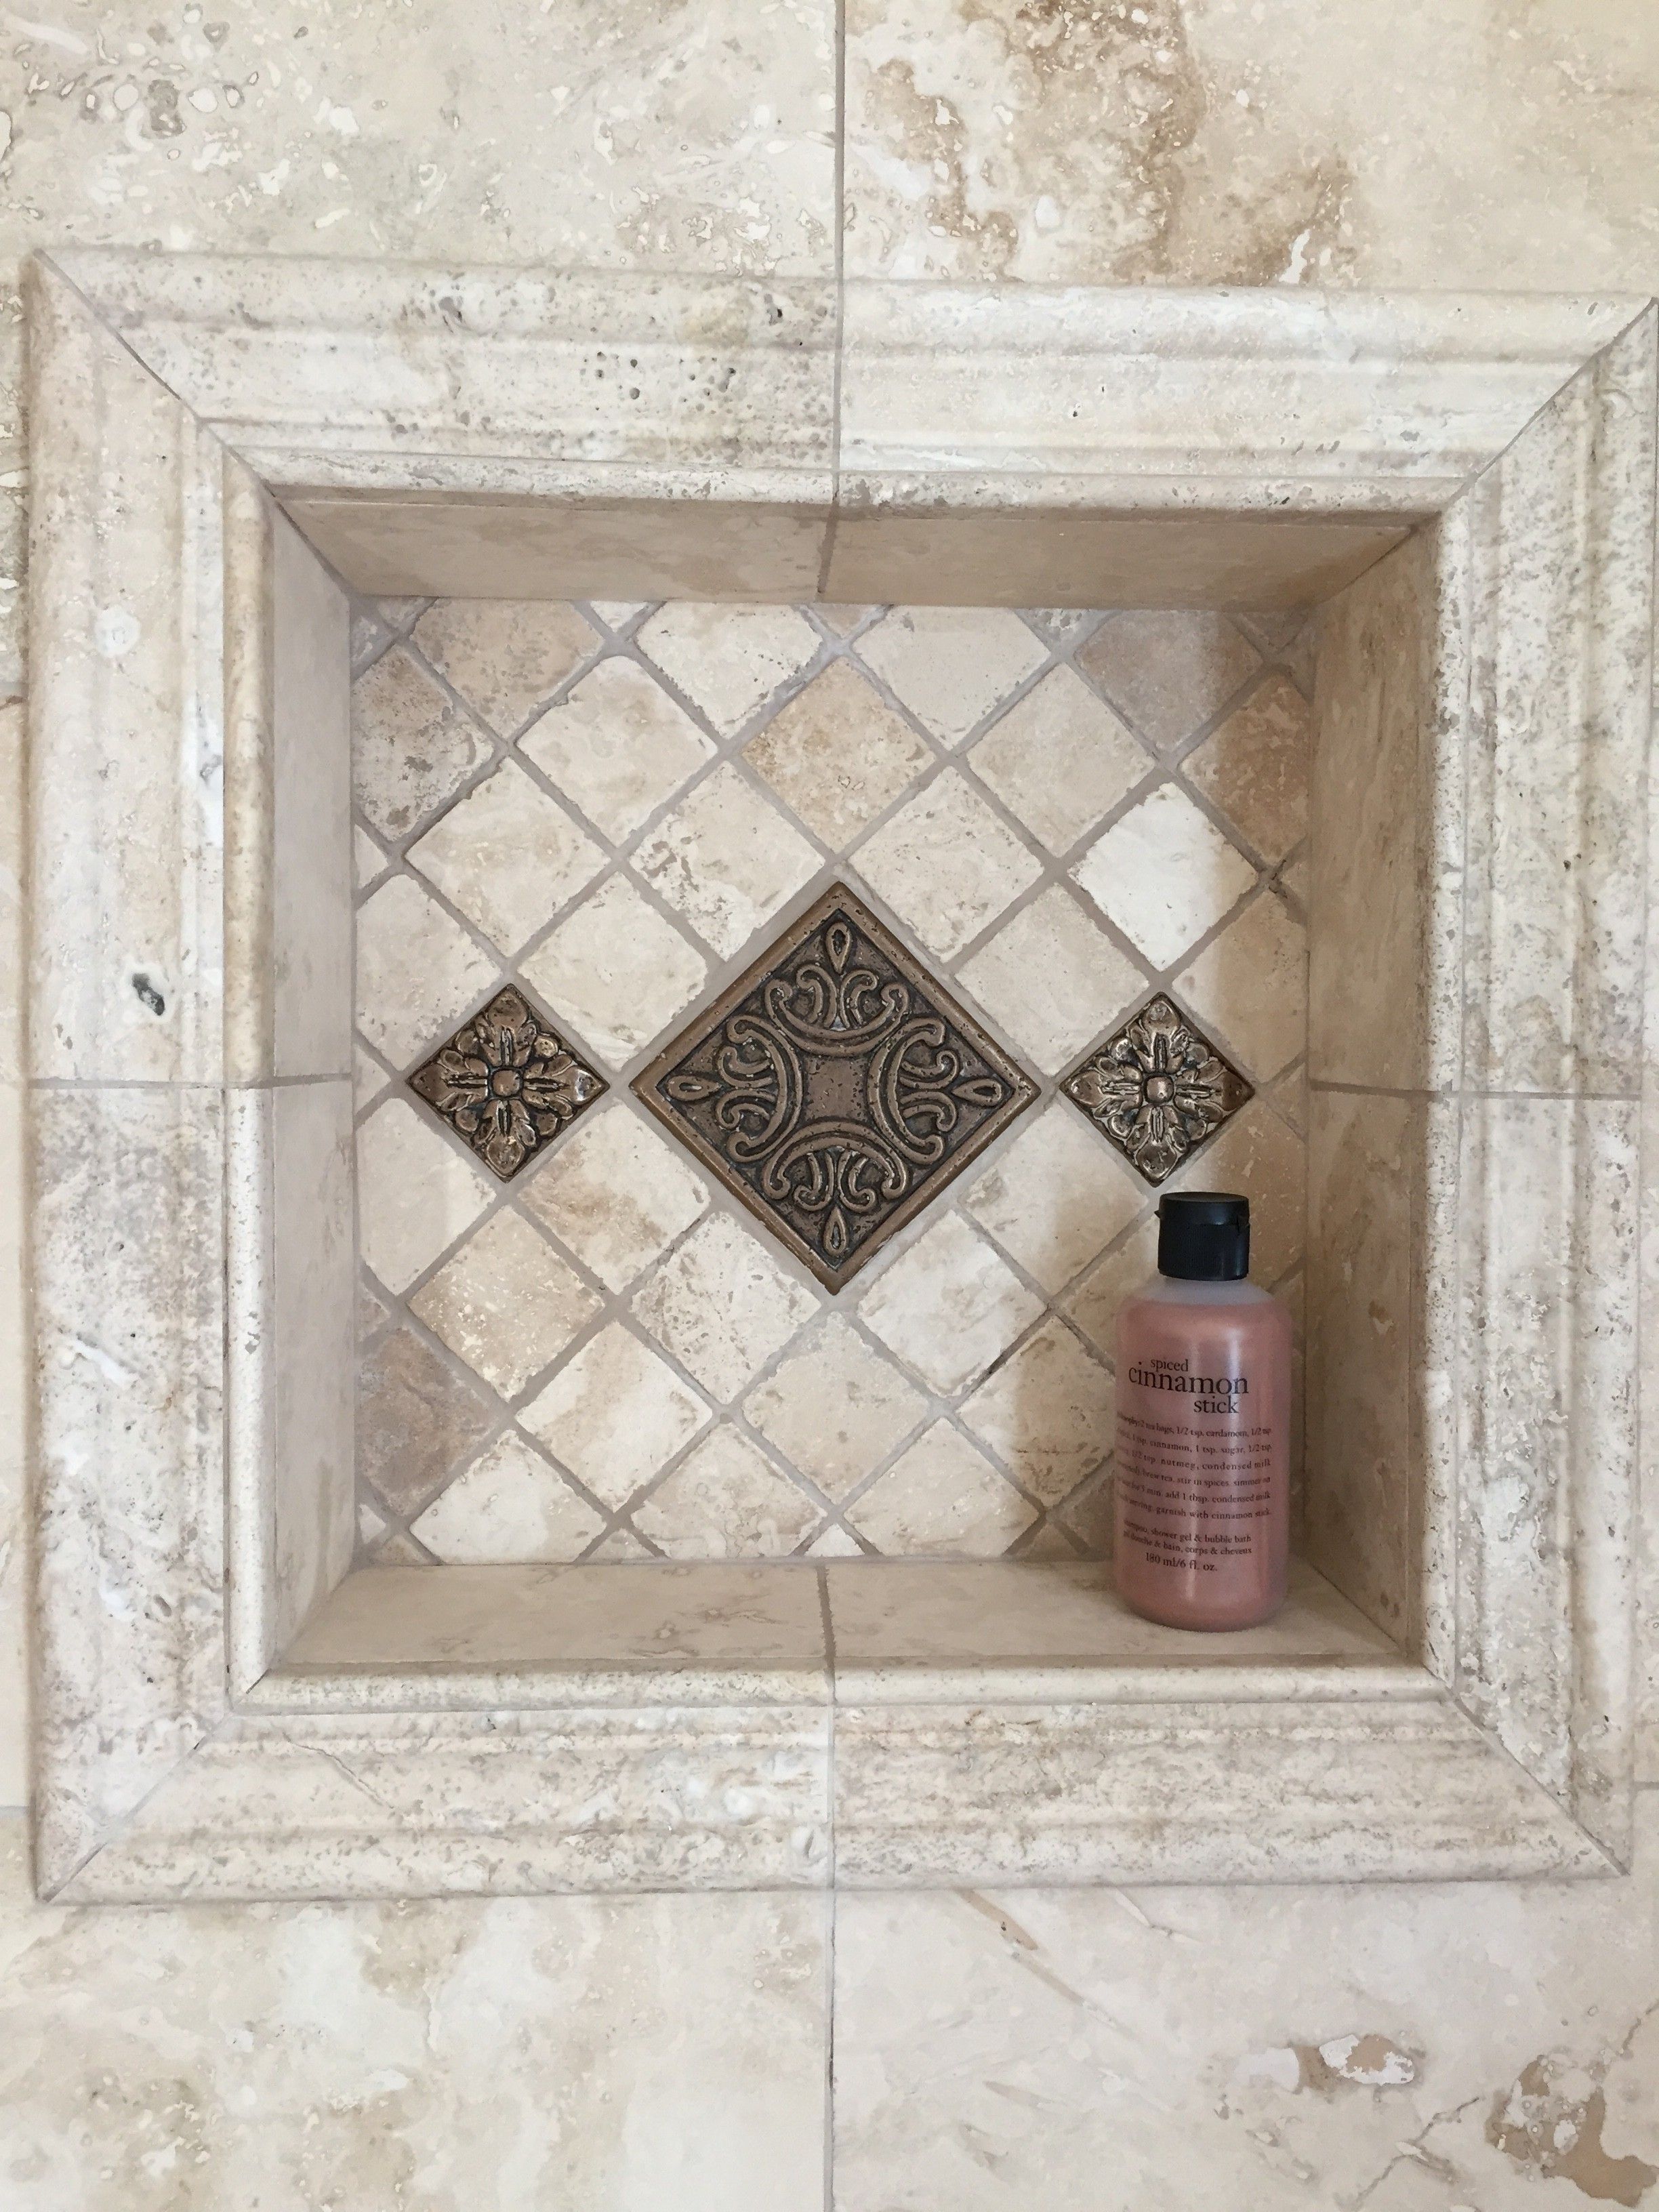 Niche To Hold Shampoo Outlined In Travertine Pencil And Trim Pieces